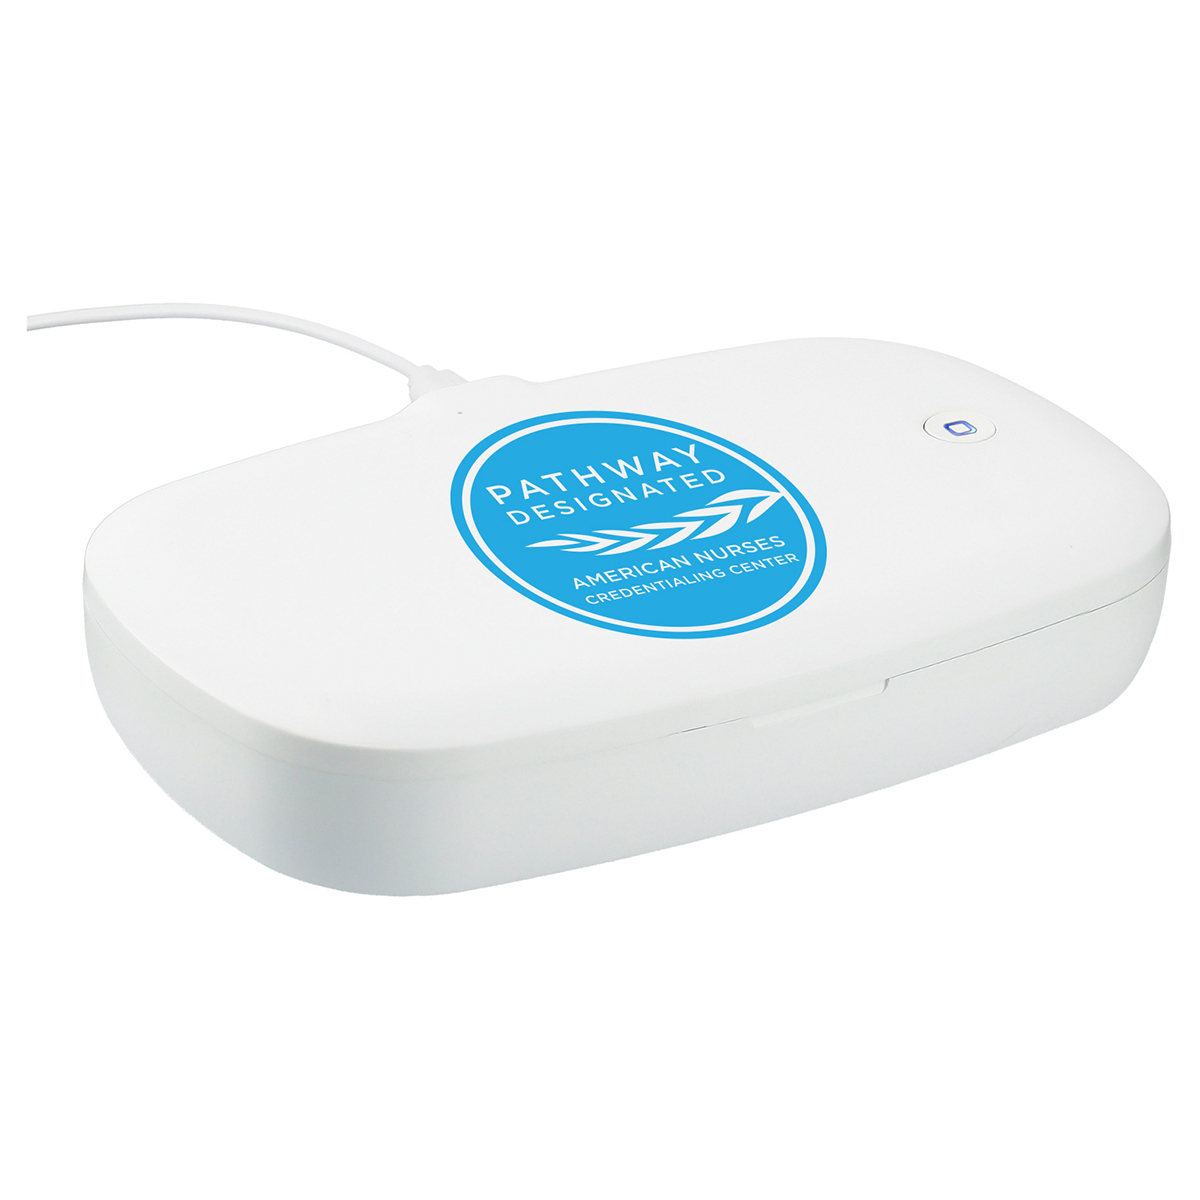 Pathway Designated Phone Charger & Sanitizer Box